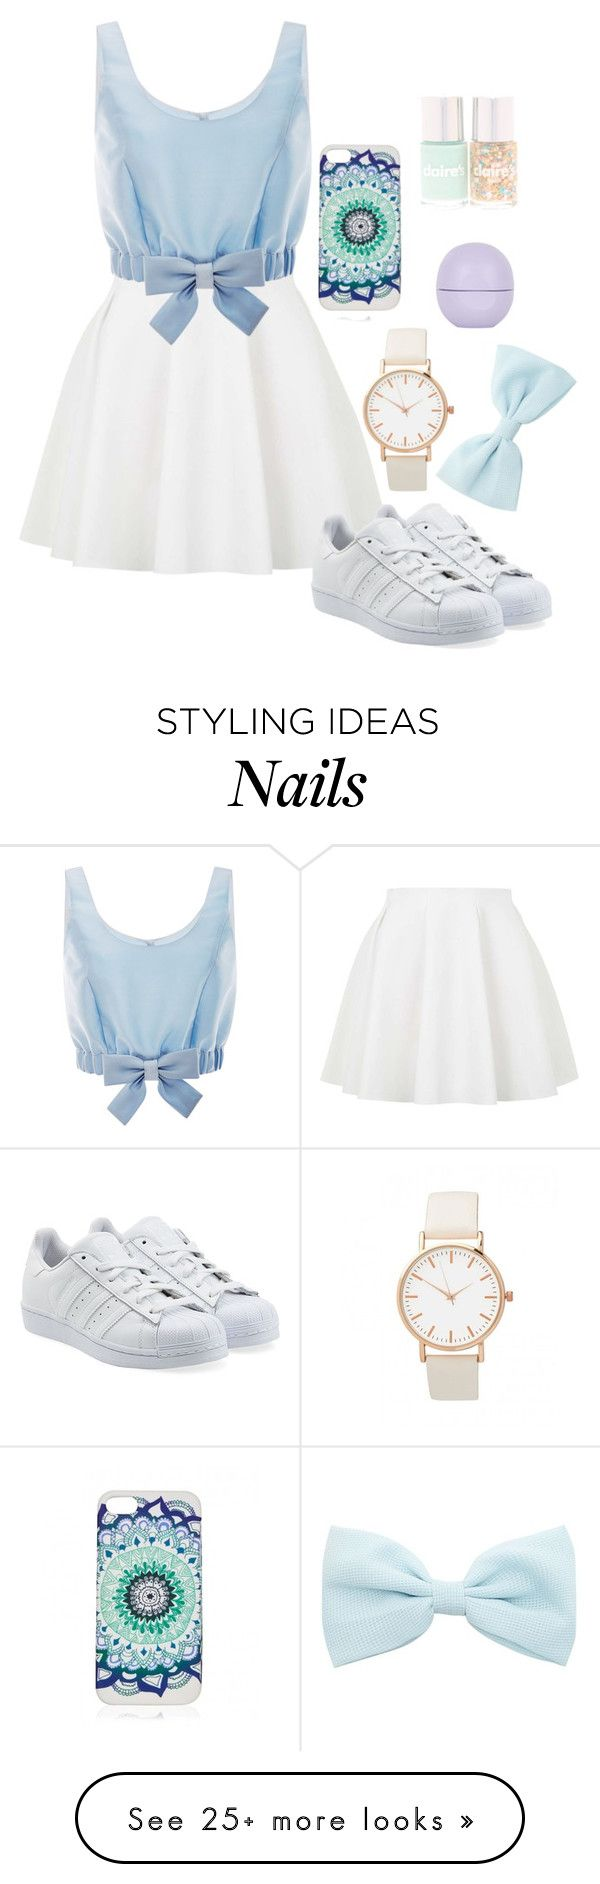 """""""In Rome"""" by cookies21 on Polyvore featuring Topshop, Honor and adidas Originals"""